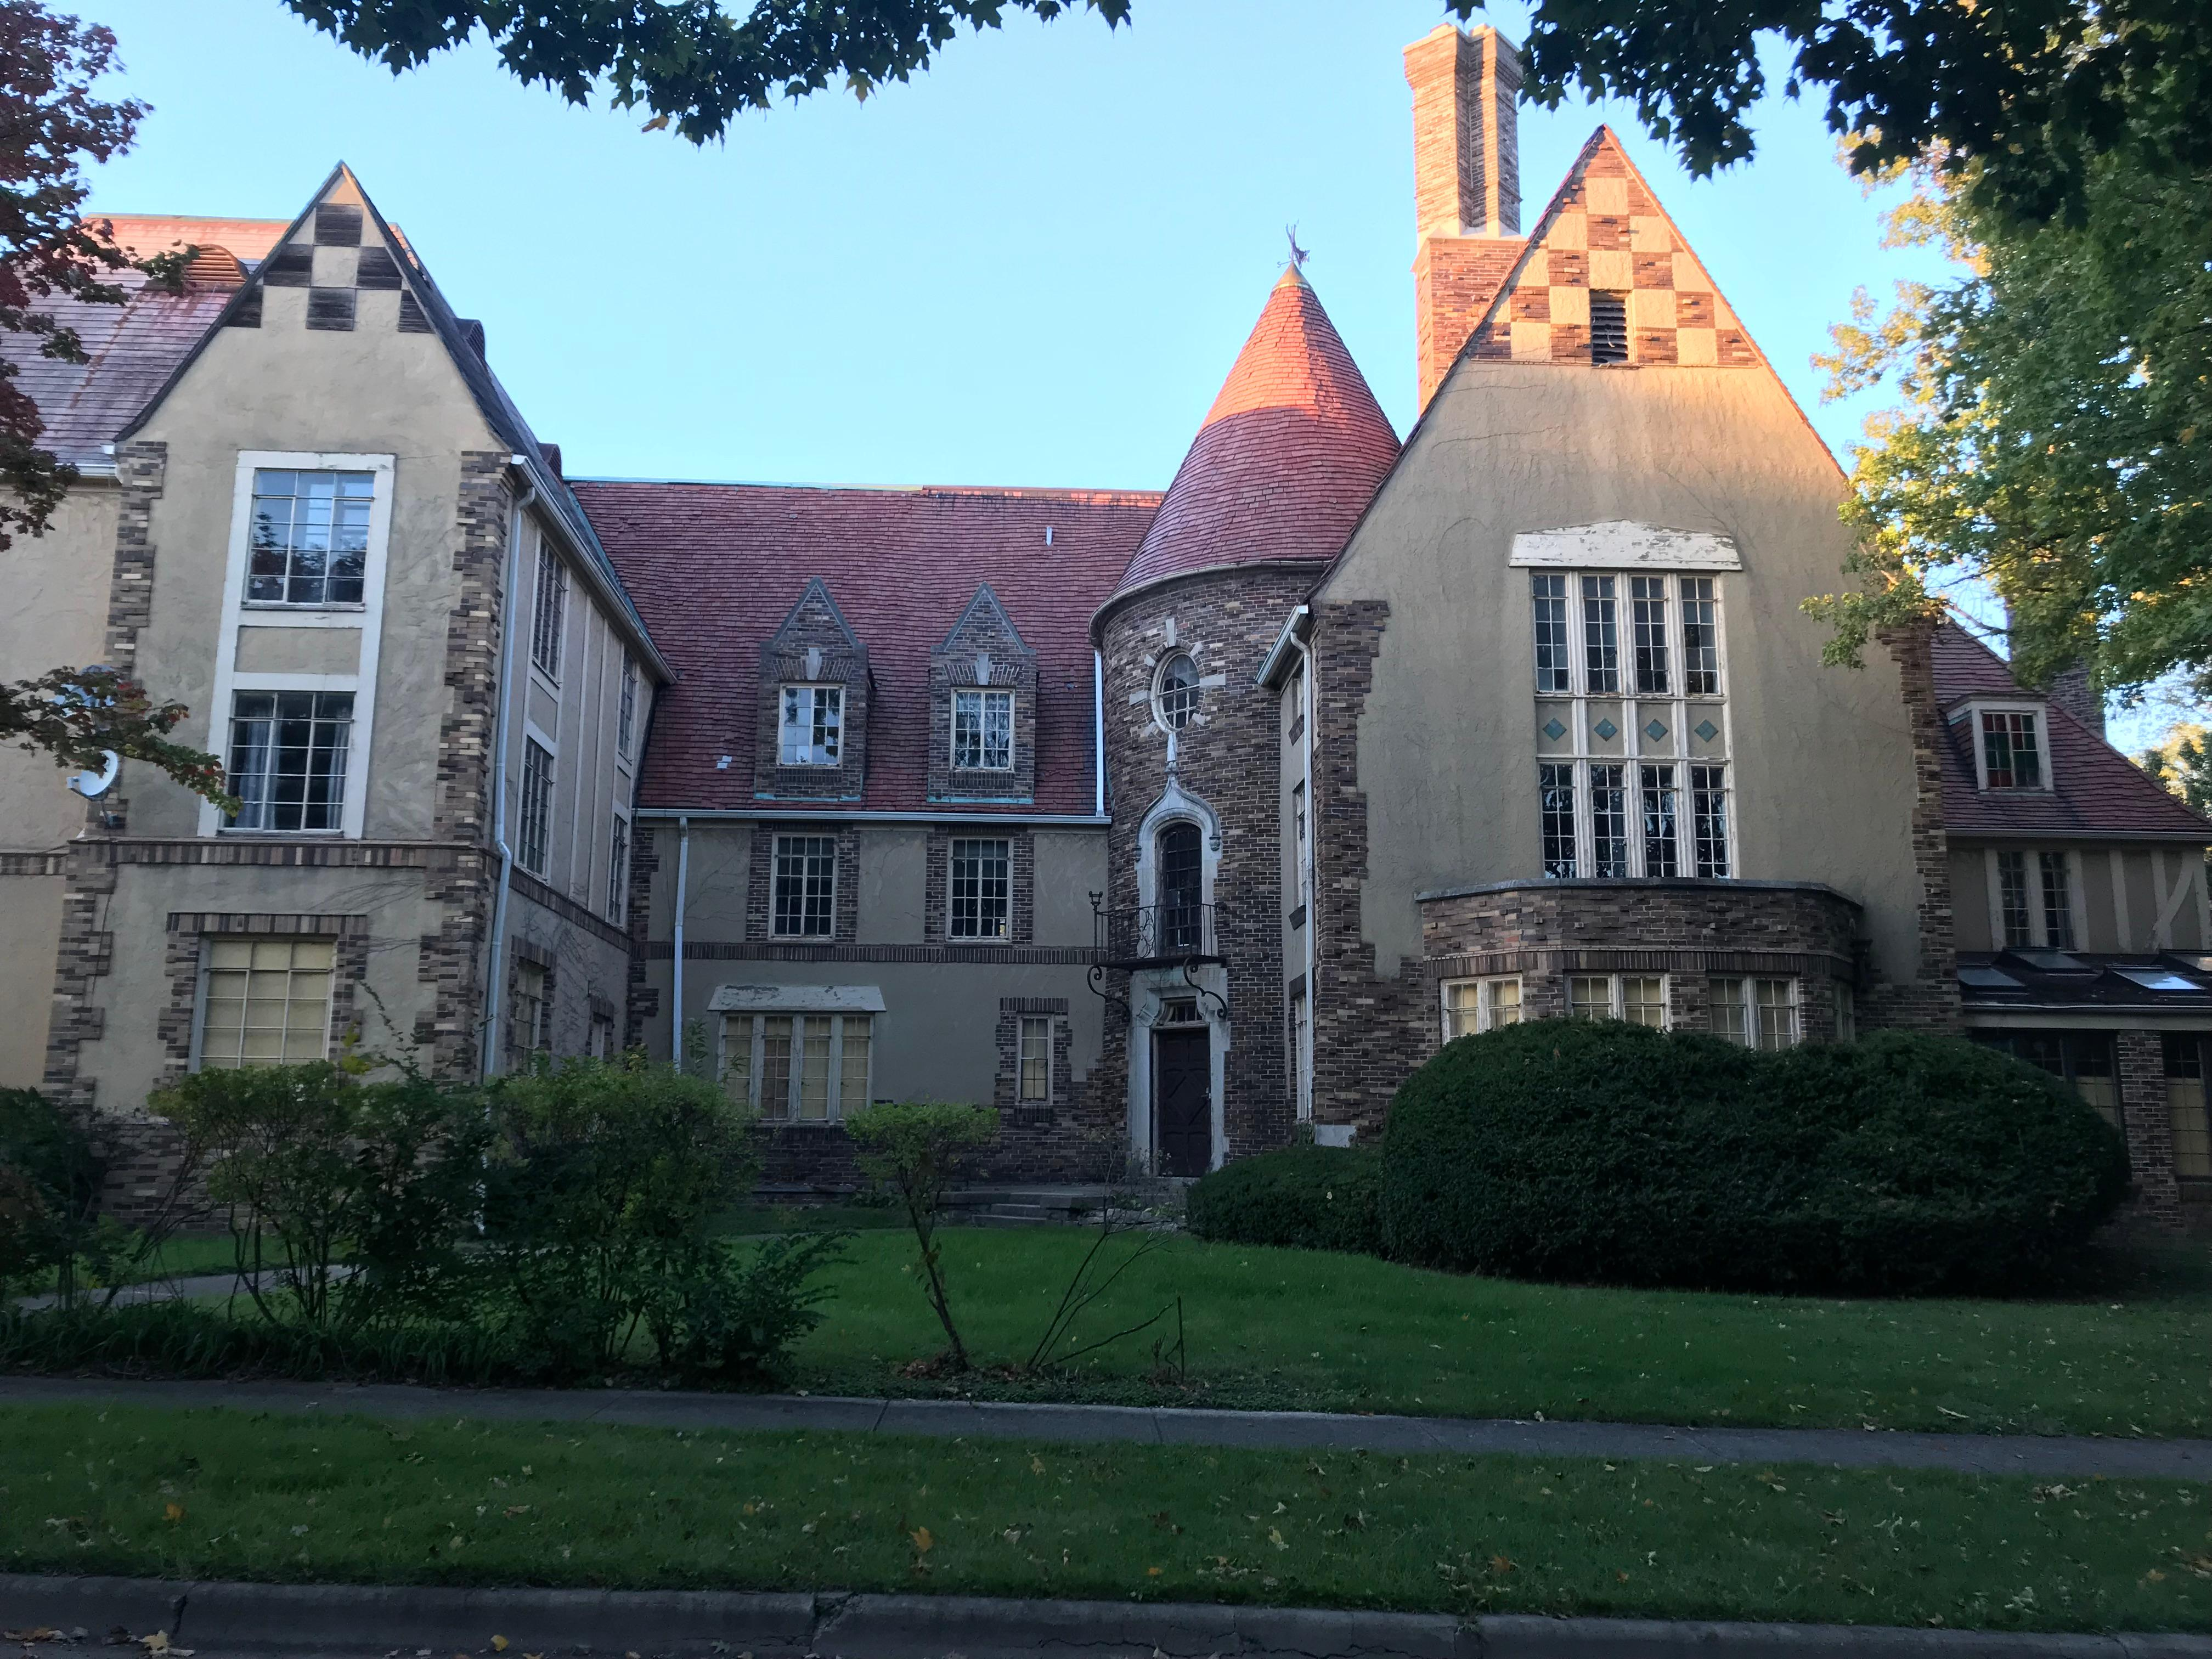 A University of Illinois professor has plans to restore a historical landmark by embracing its French-inspired architecture. His project looks convert the former sorority house into an 18-unit apartment complex. (WCCU)<p></p>